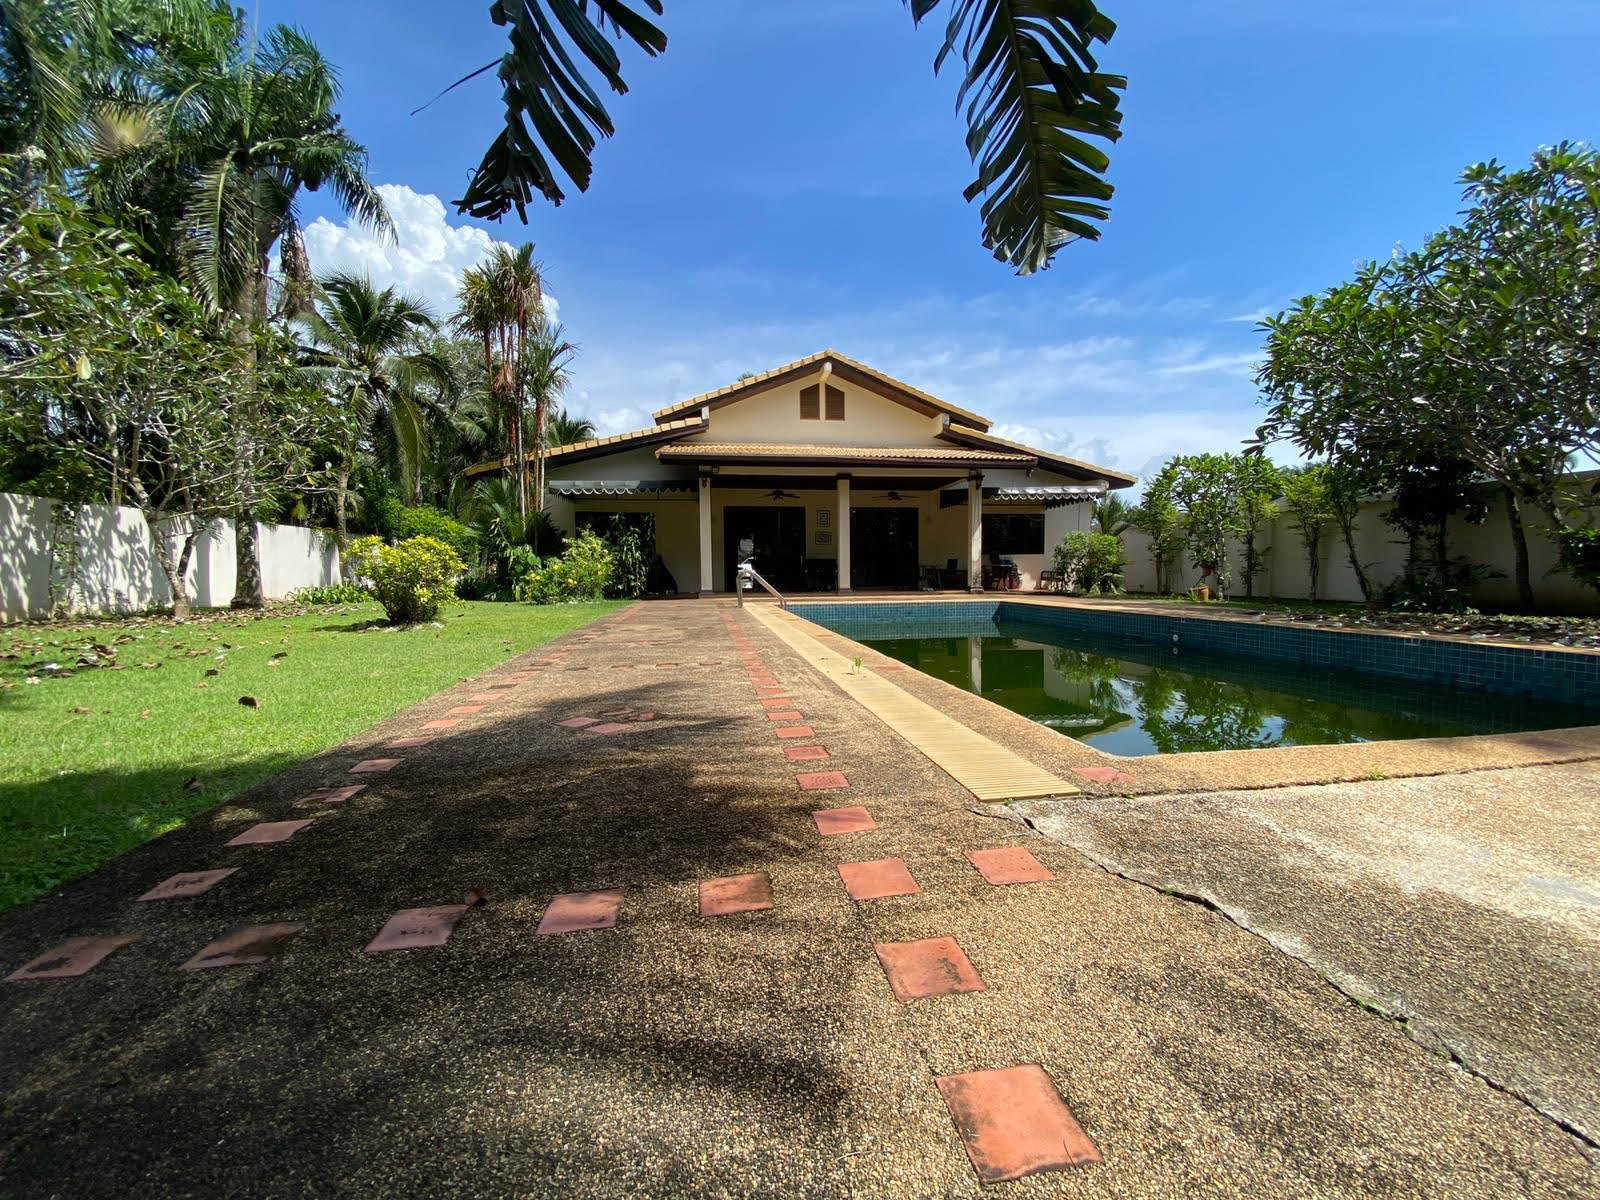 1 Rai Freehold Land and Villa For Sale